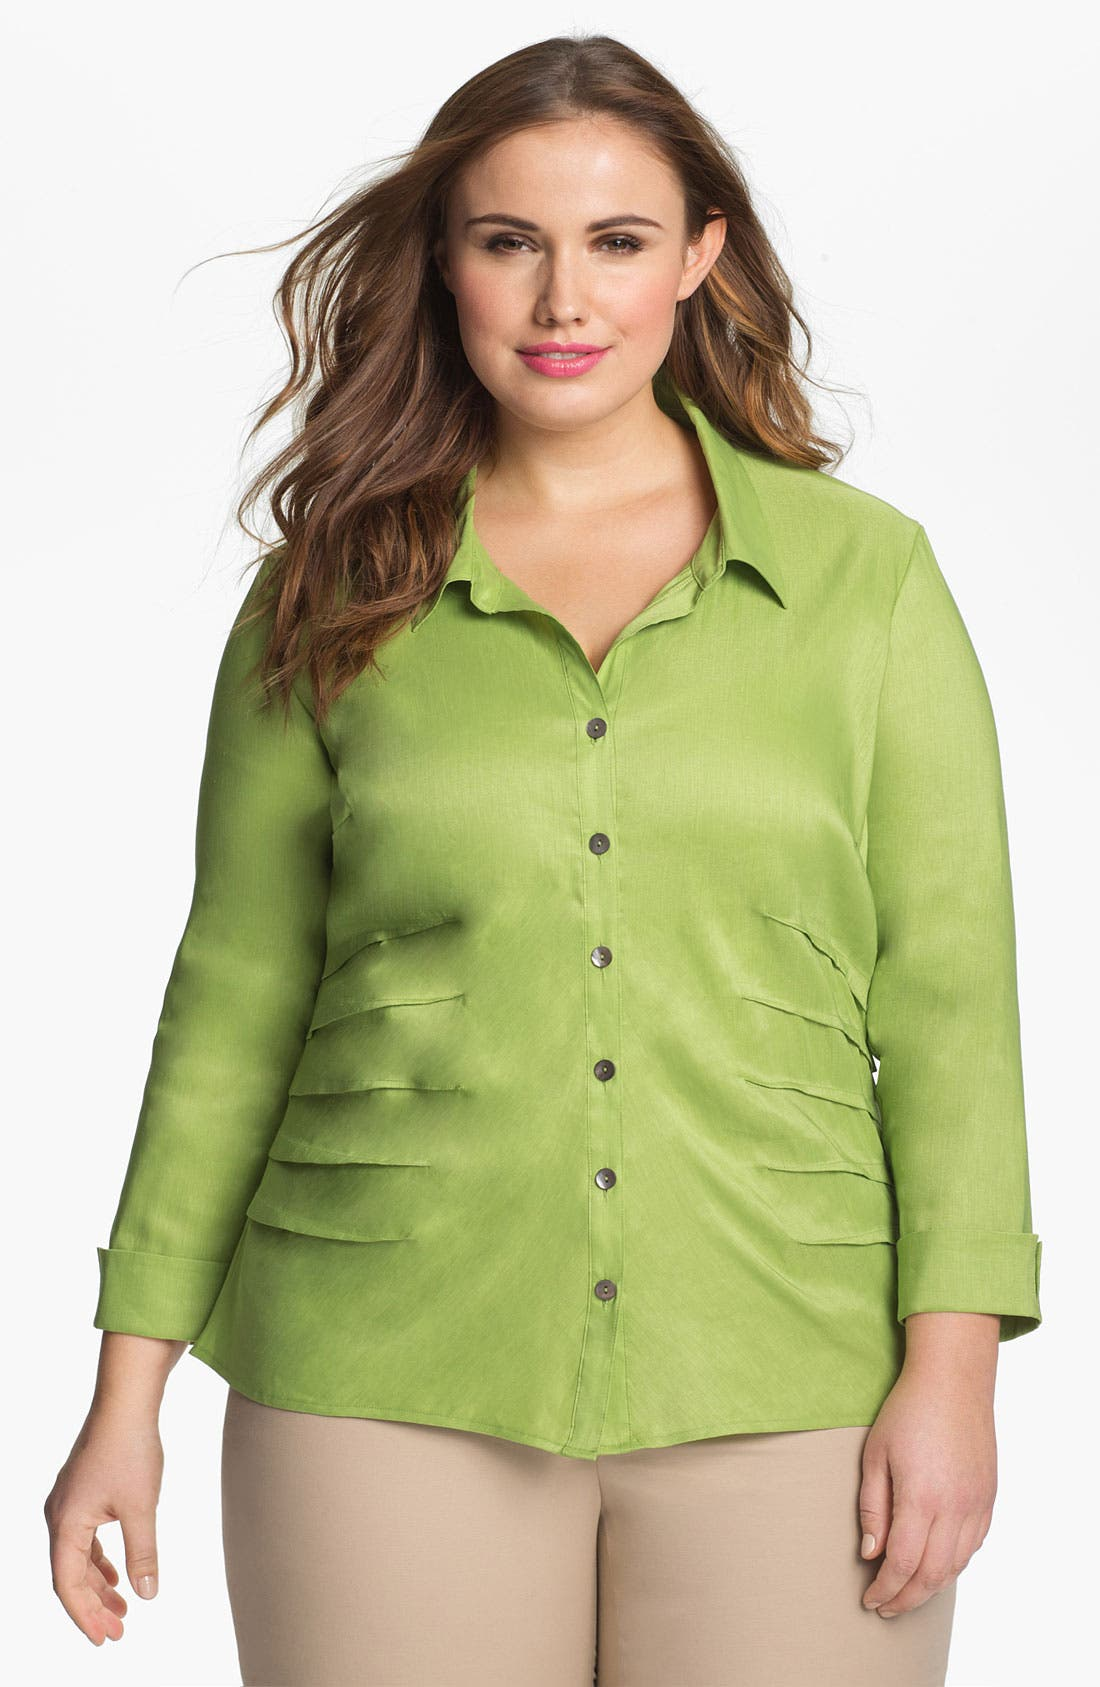 Alternate Image 1 Selected - Nic + Zoe Button Up Shirt (Plus Size)